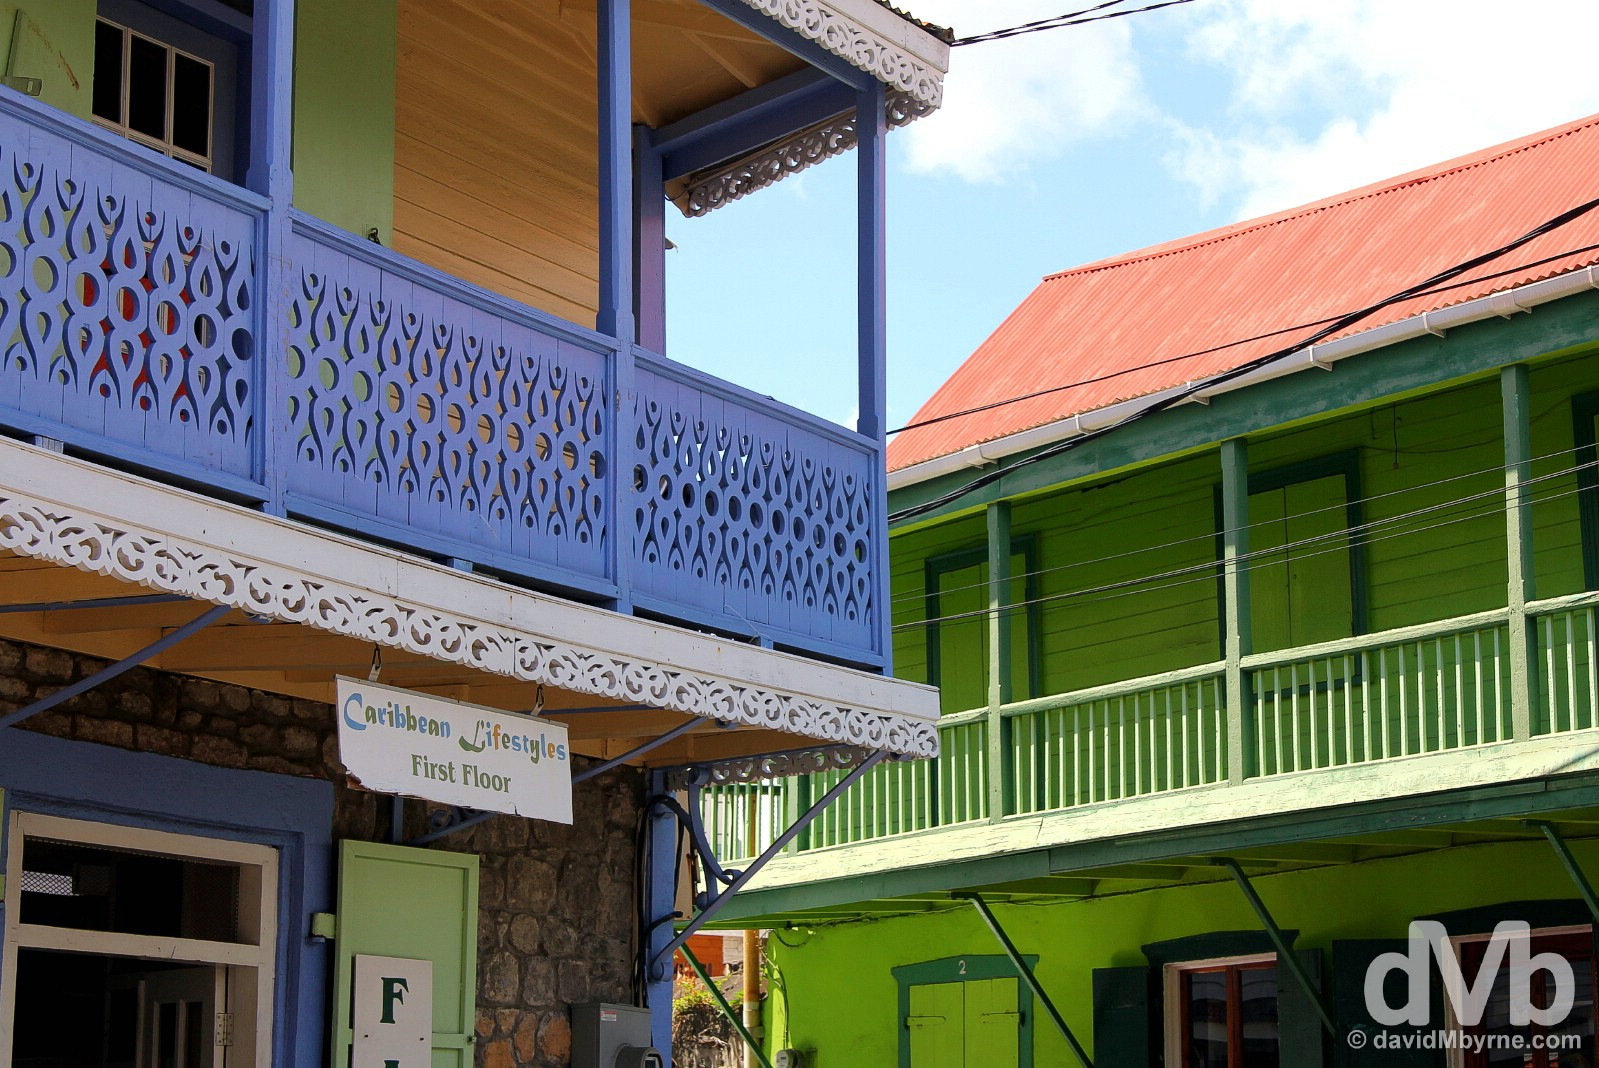 Colourful stone-&-wooden buildings in Roseau, Dominica, Lesser Antilles. June 10, 2015.